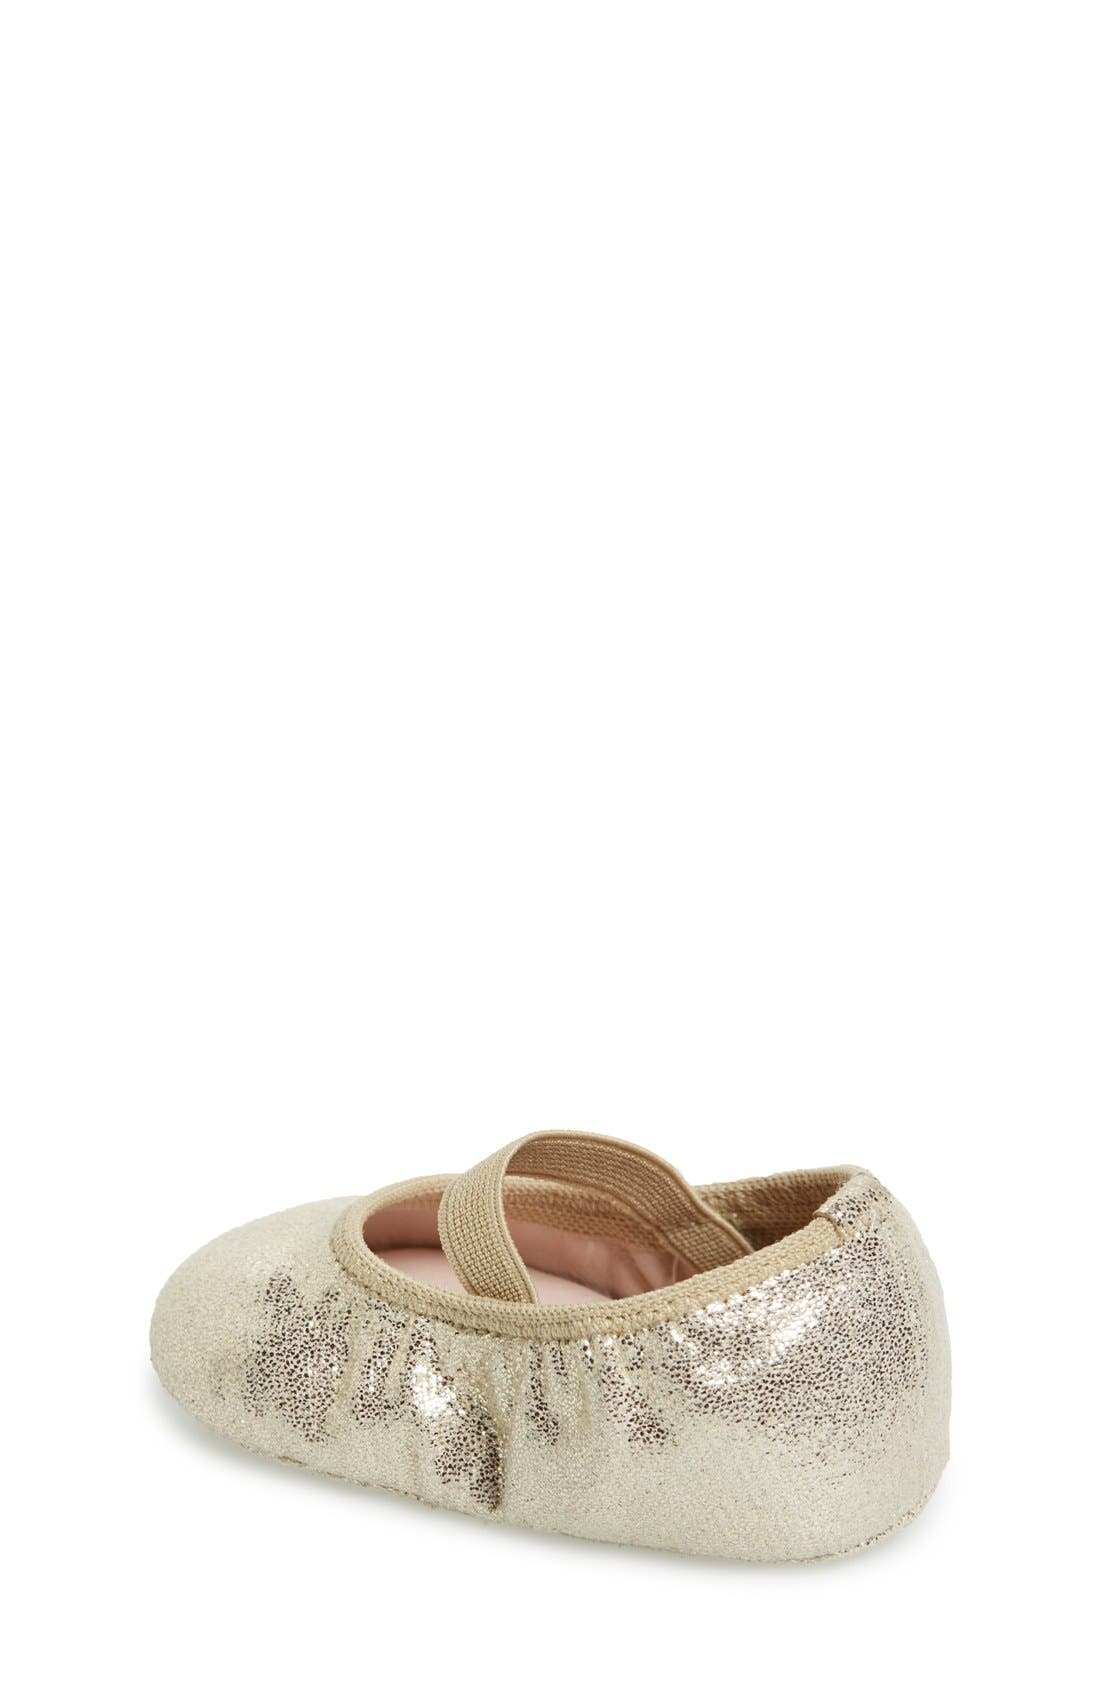 'Josie' Crib Shoe,                             Alternate thumbnail 2, color,                             Gold